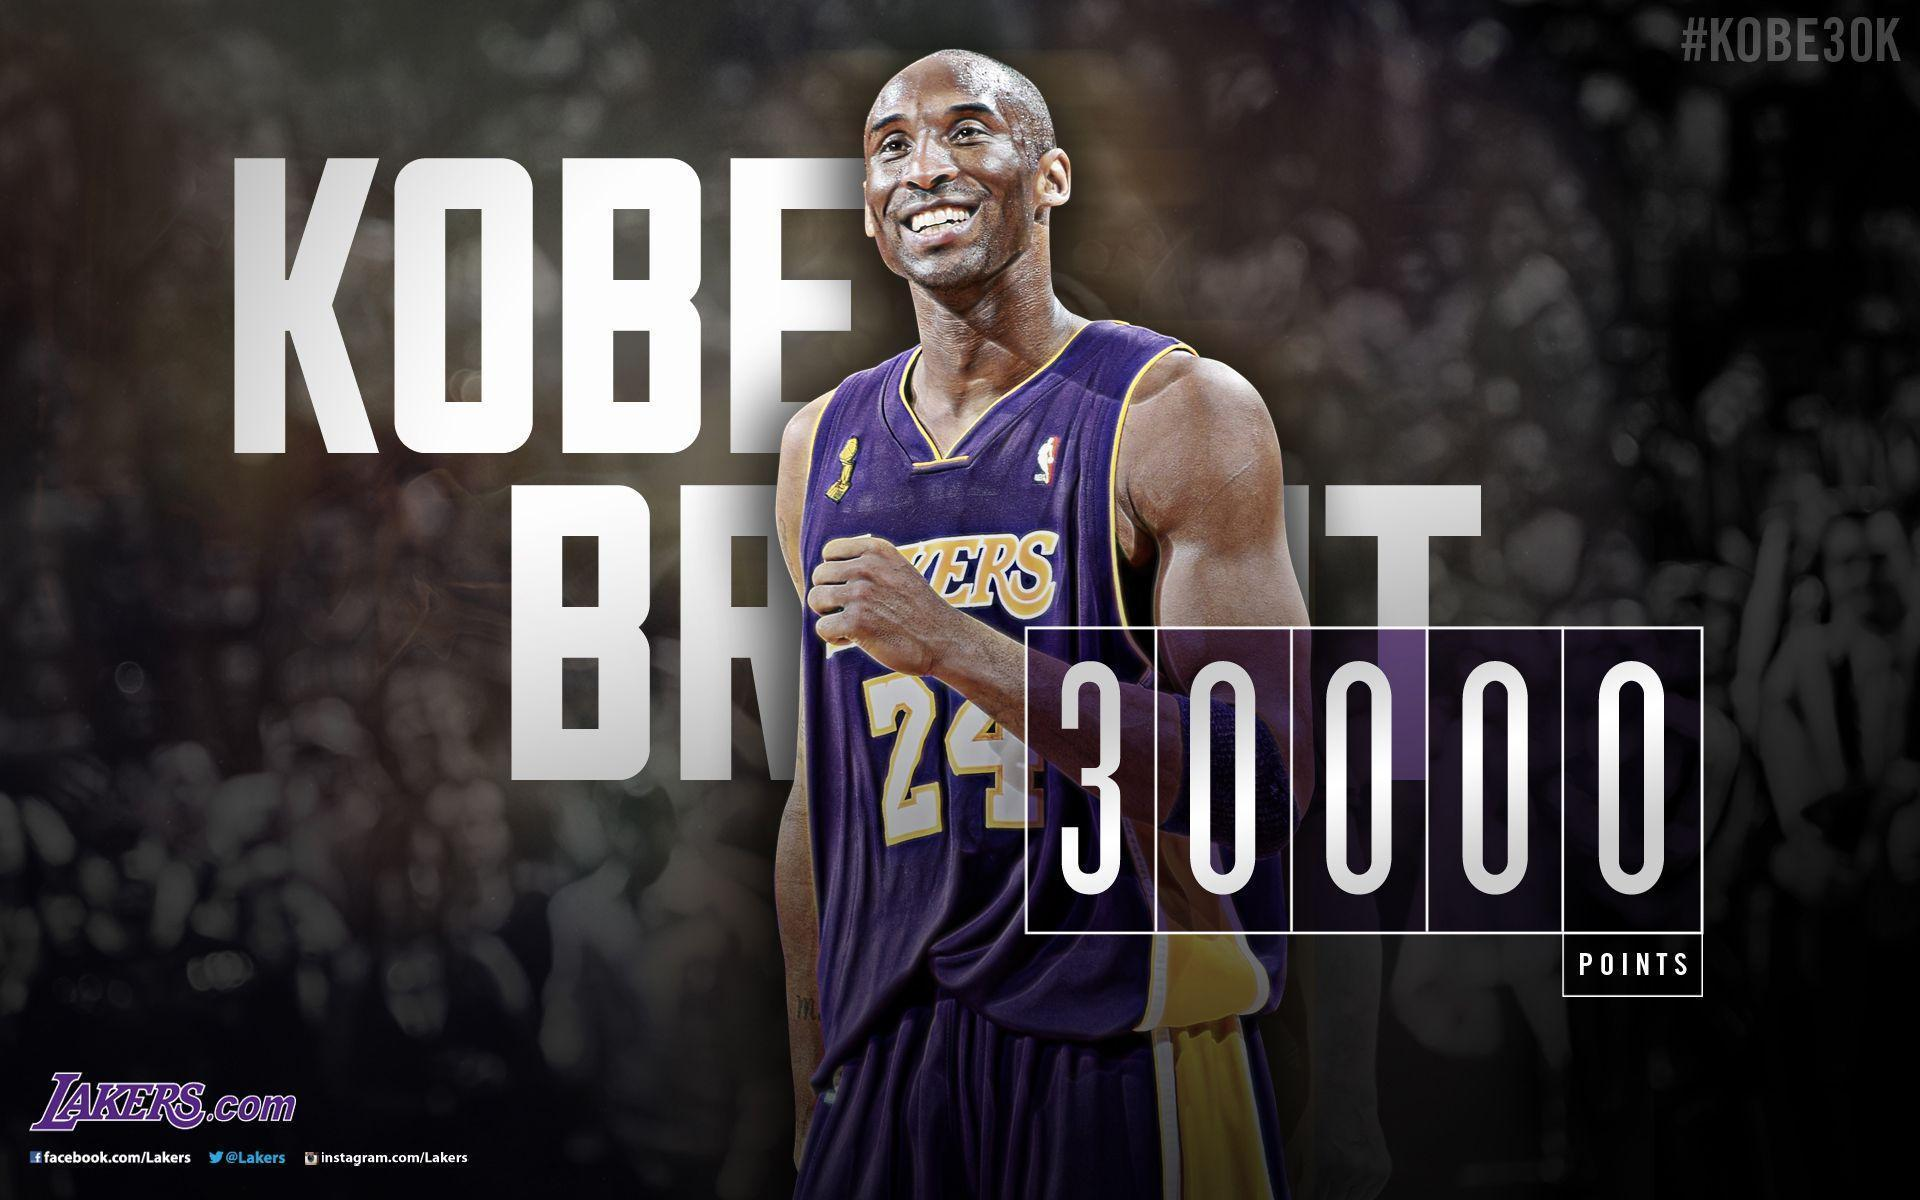 Lakers Wallpapers And Infographics: Kobe Bryant Wallpapers 2017